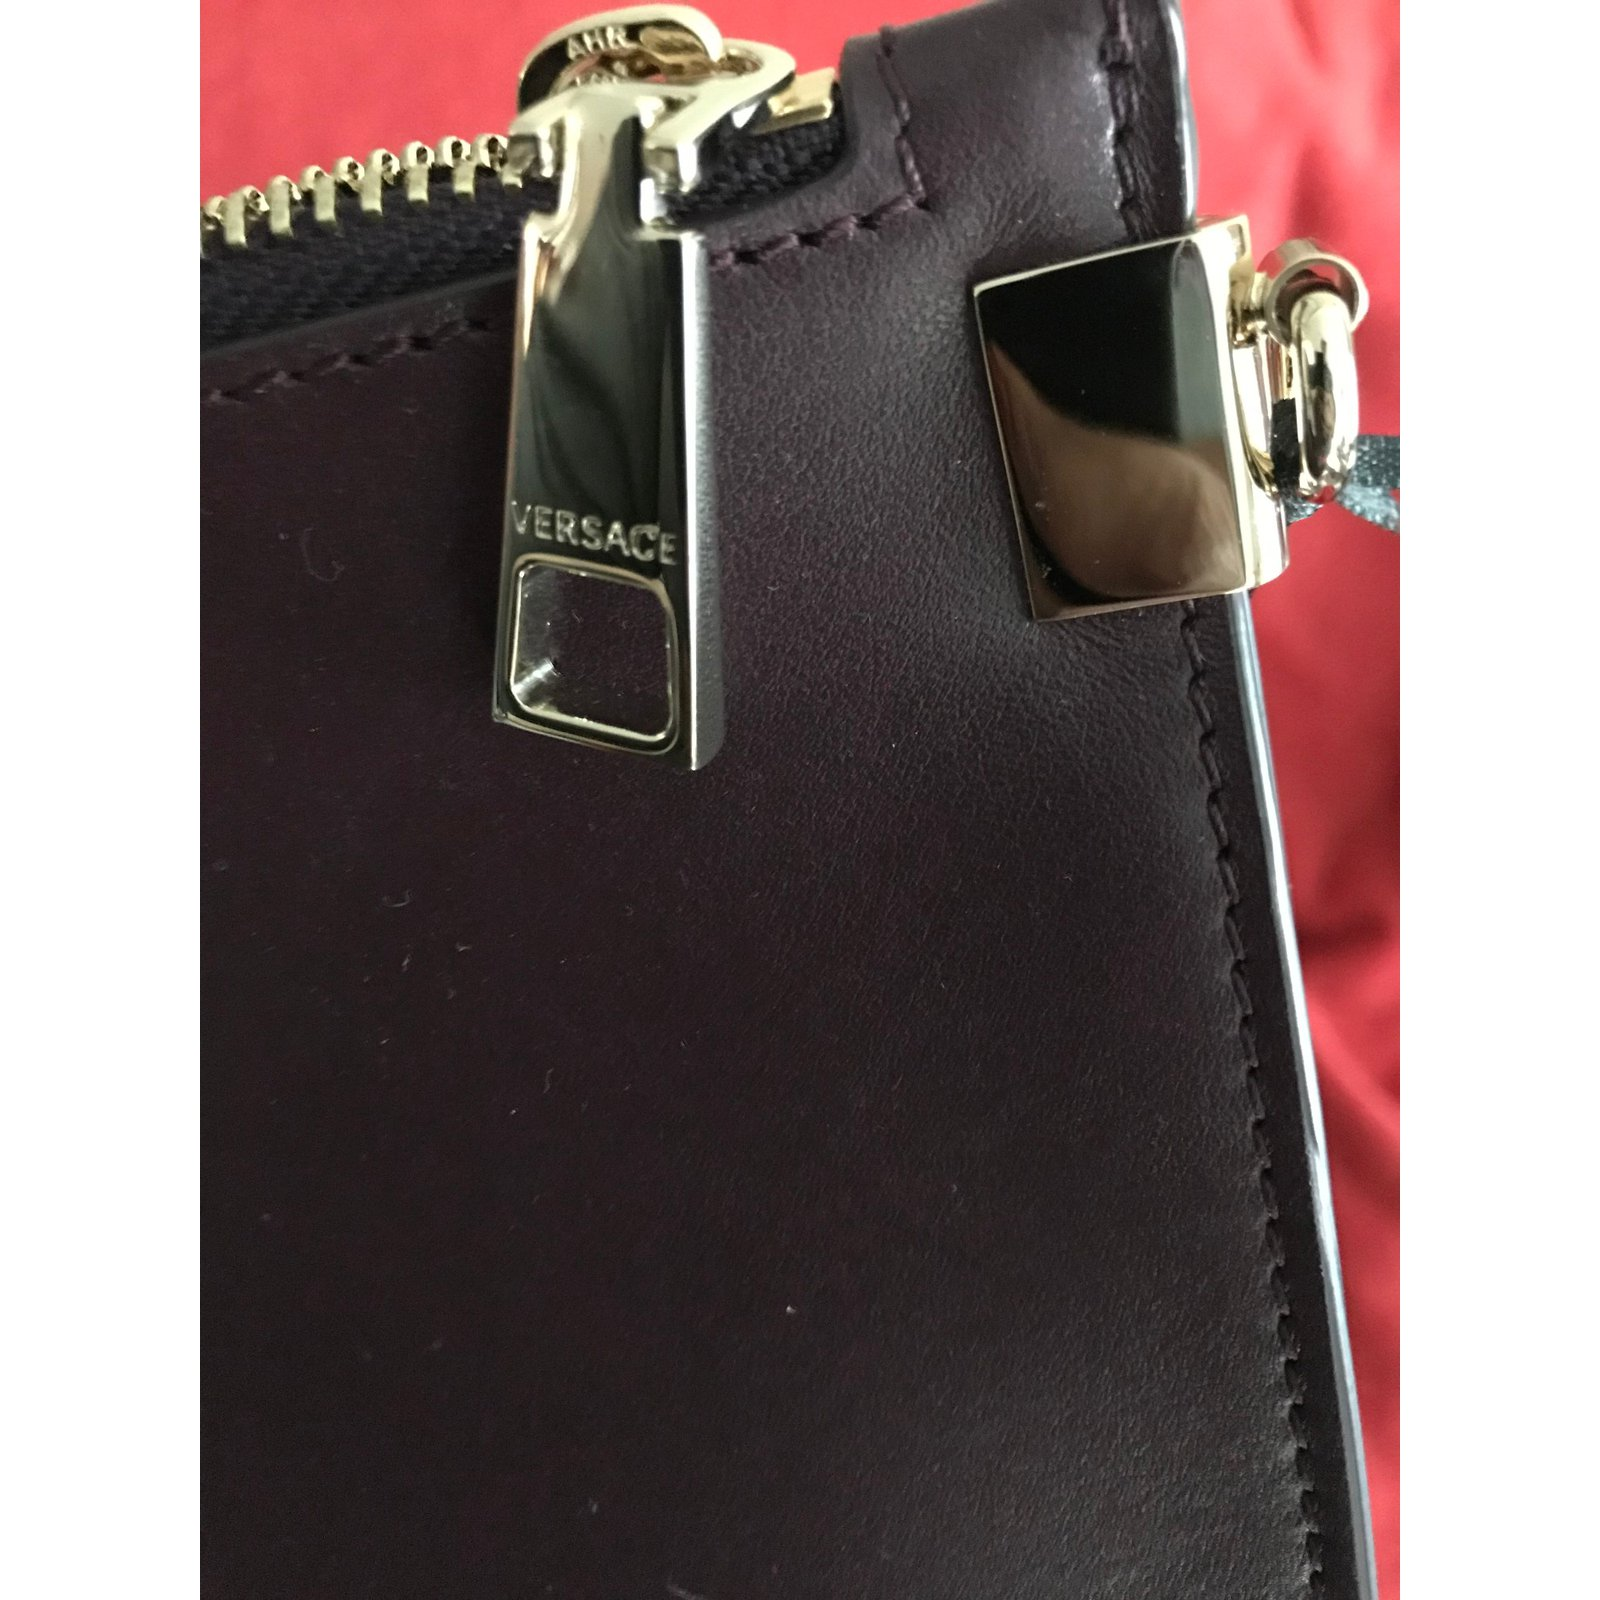 Facebook · Pin This. Gianni Versace VERSACE MEDUSA CALF LEATHER POUCH - burgungy  All new Handbags Leather Dark brown ref 6c6e36ddc1a86